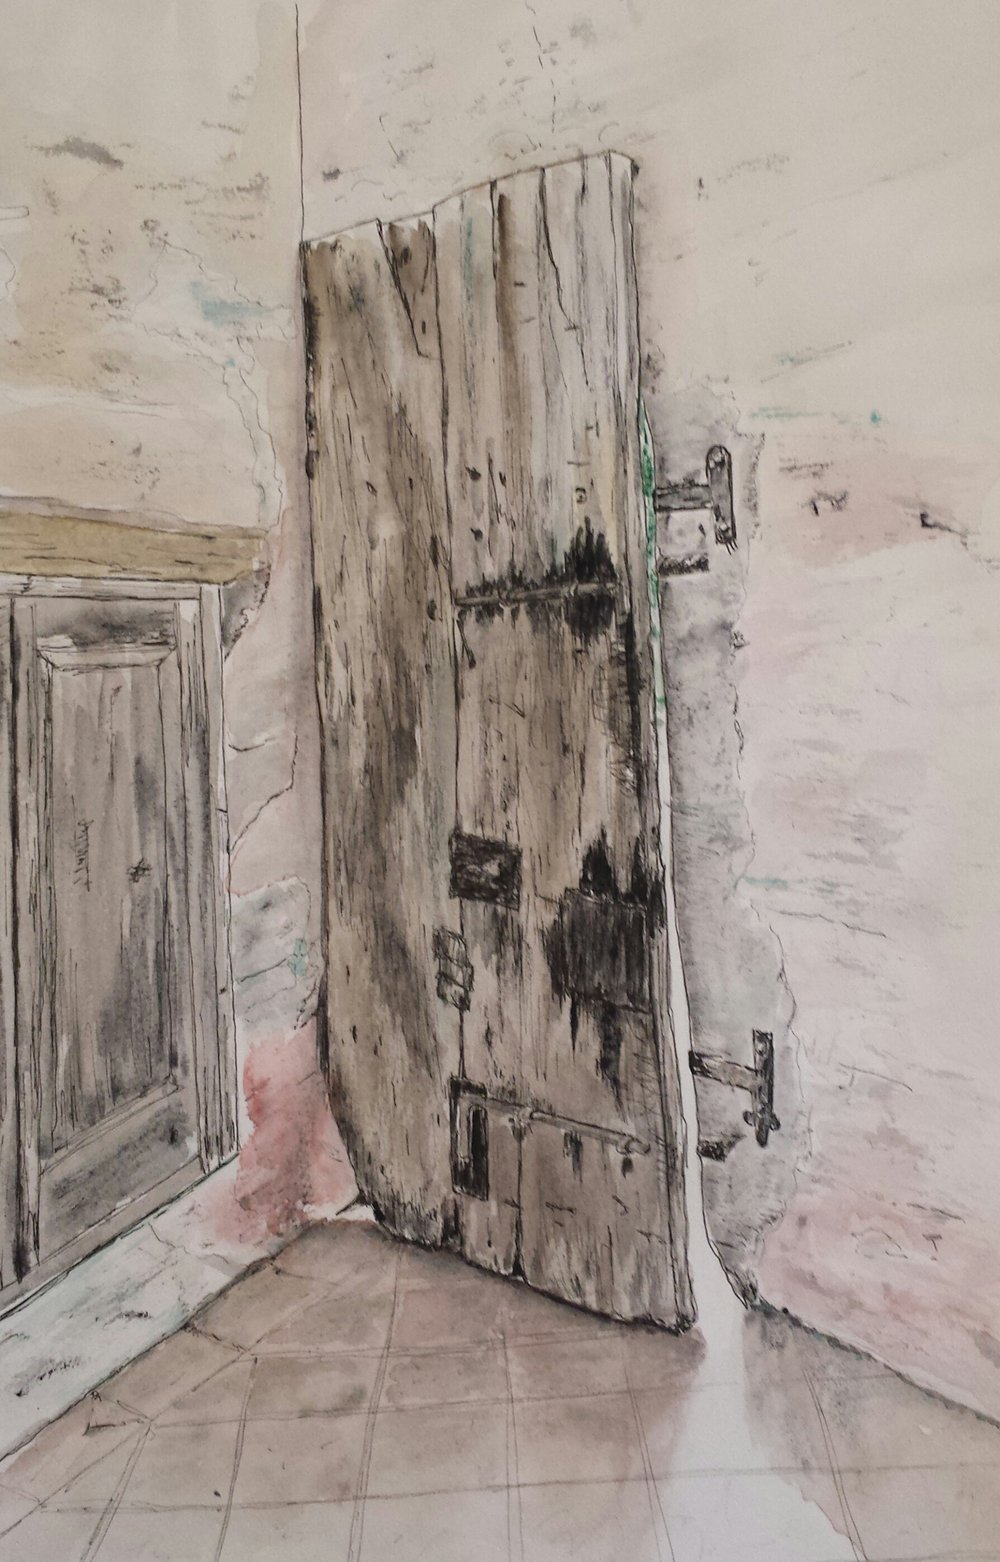 Castle Door II, Orzinuovi, Italy, 2016, pen and wash.